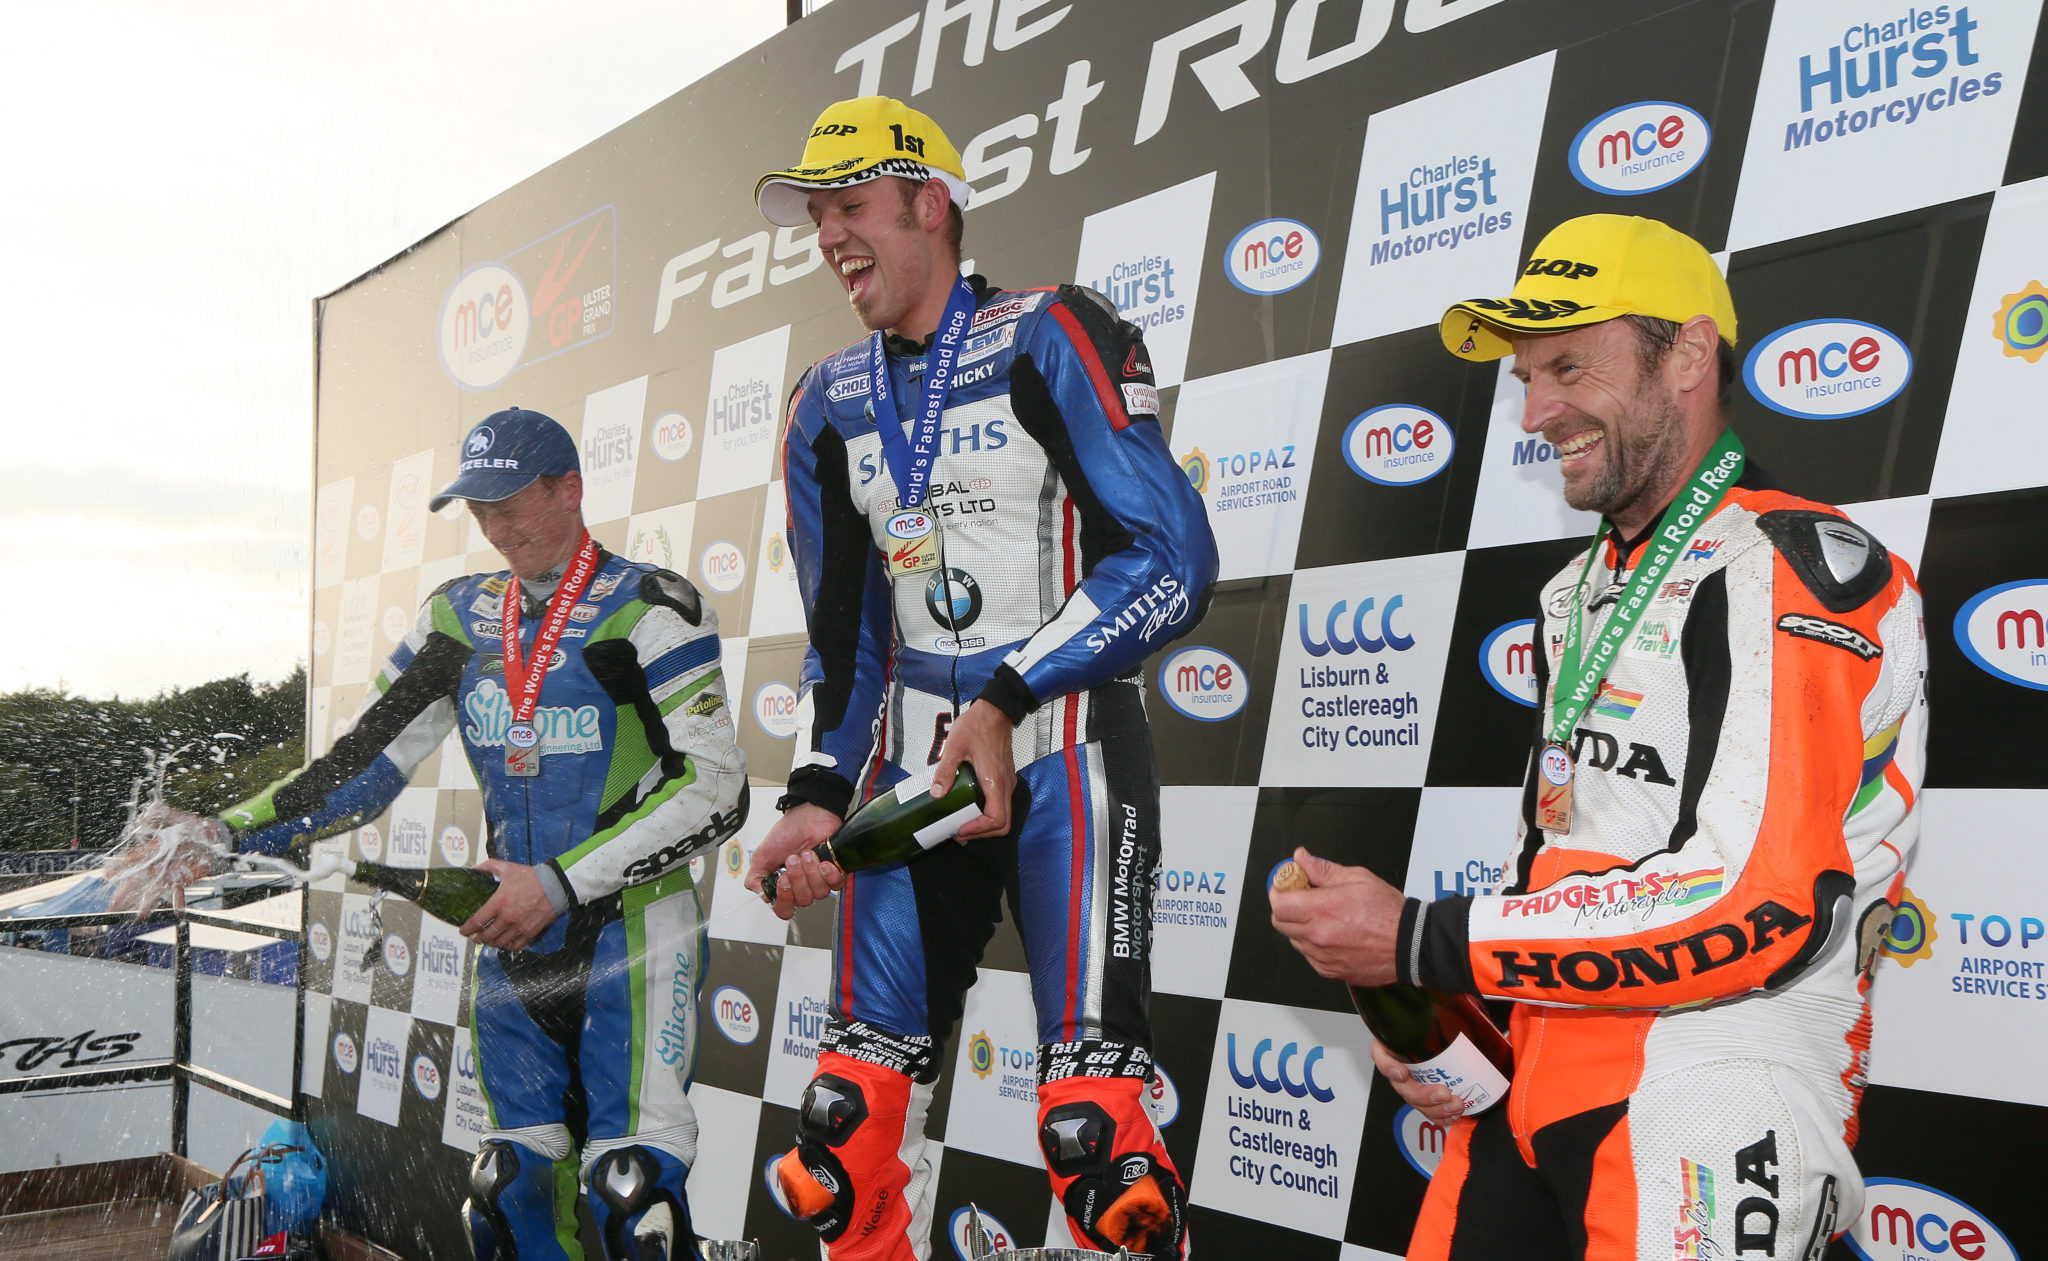 Who will be topping the podium this year? image credit Pacemaker Press International